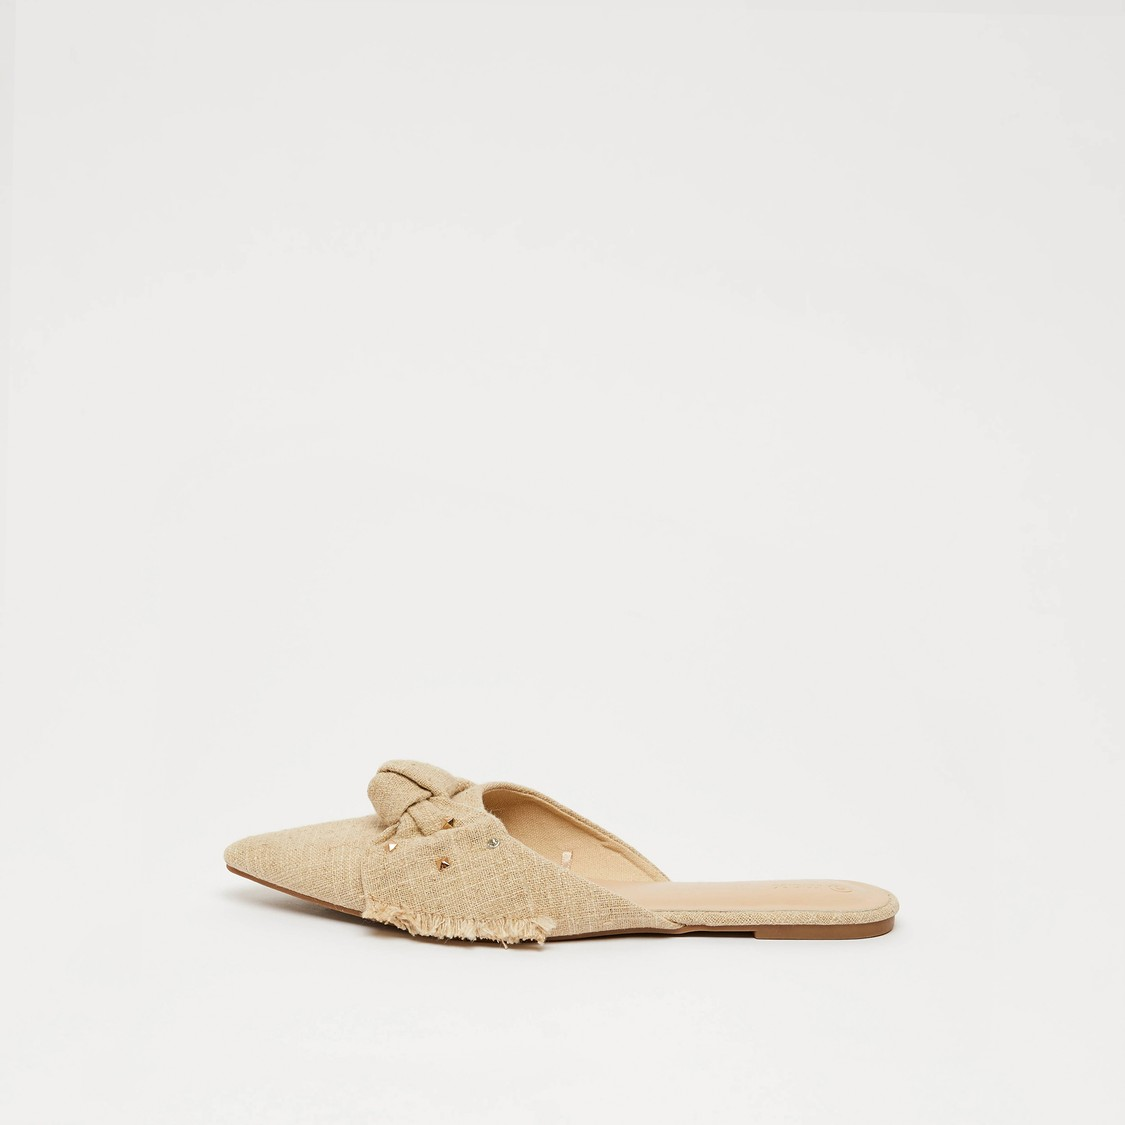 Pointed Toe Flat Mules with Bow Accent